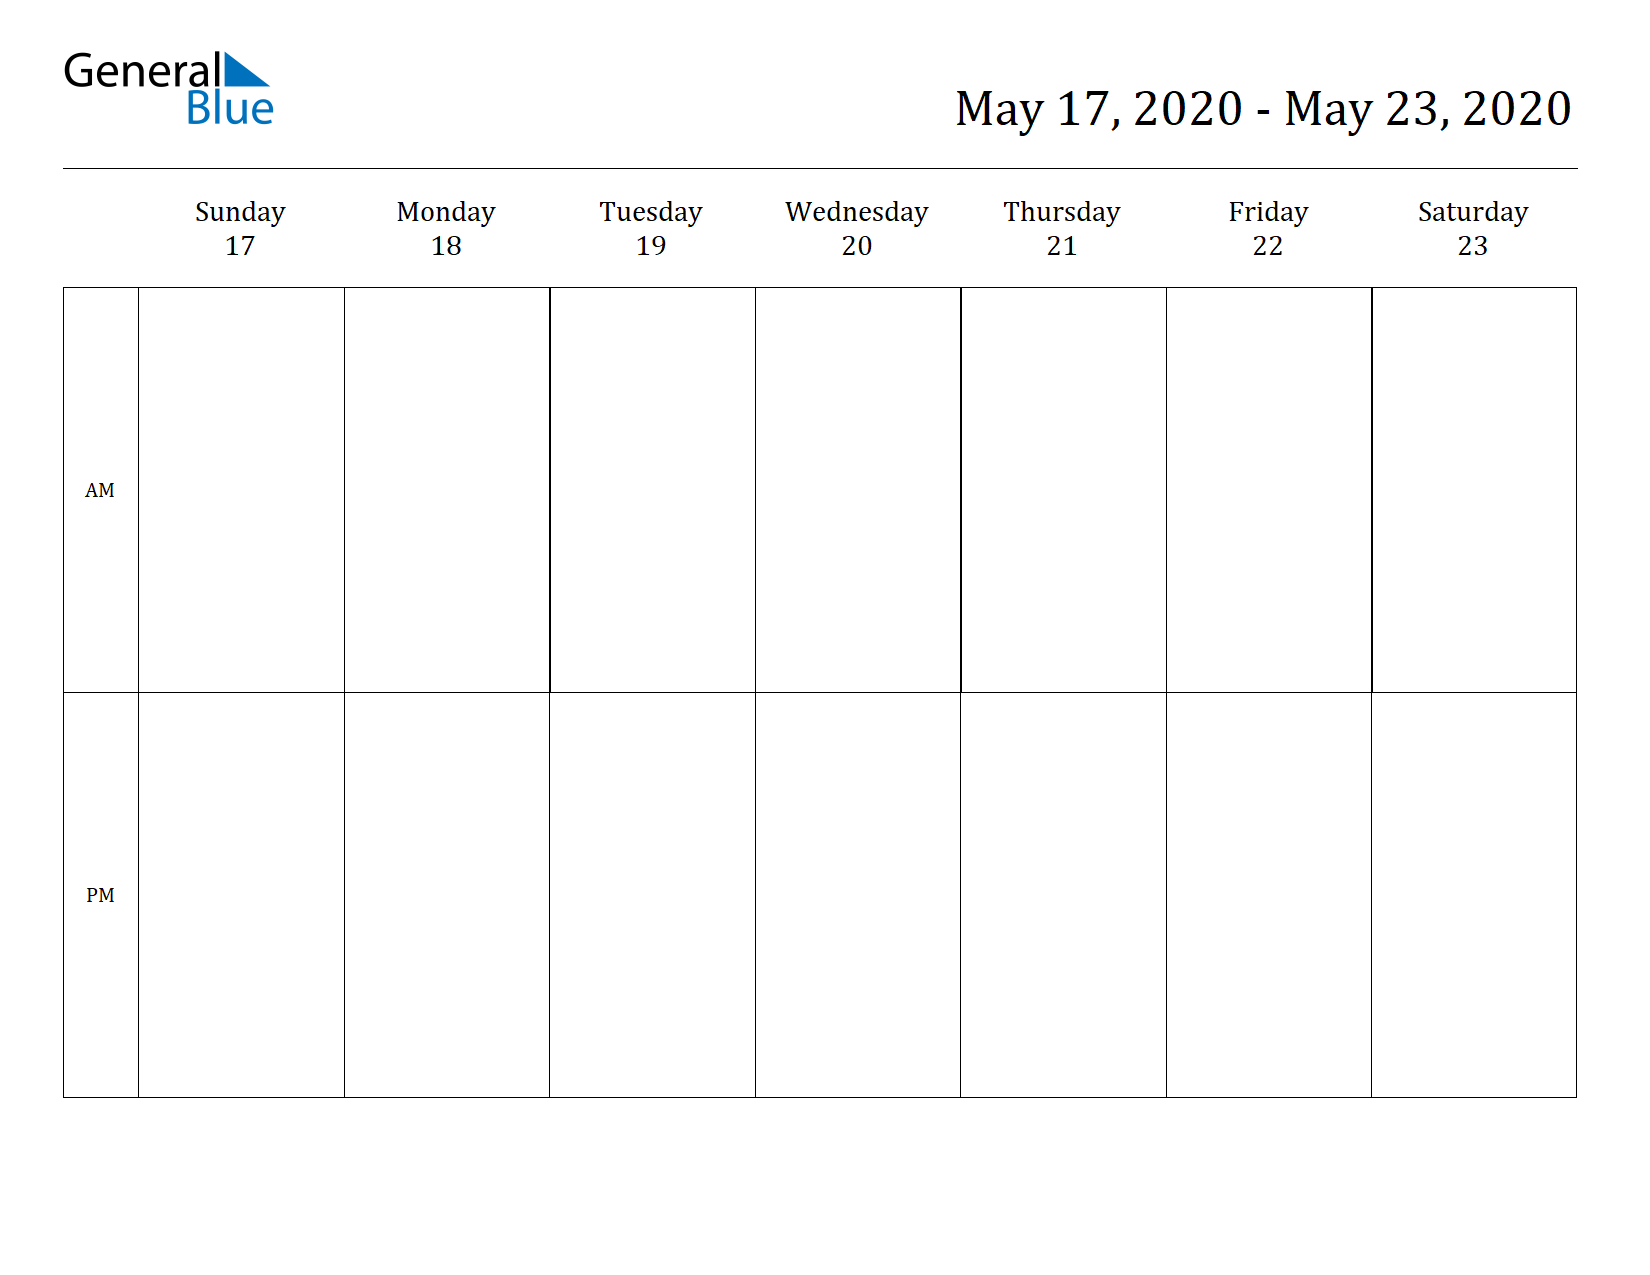 Weekly Calendar for May 17, 2020 to May 23, 2020